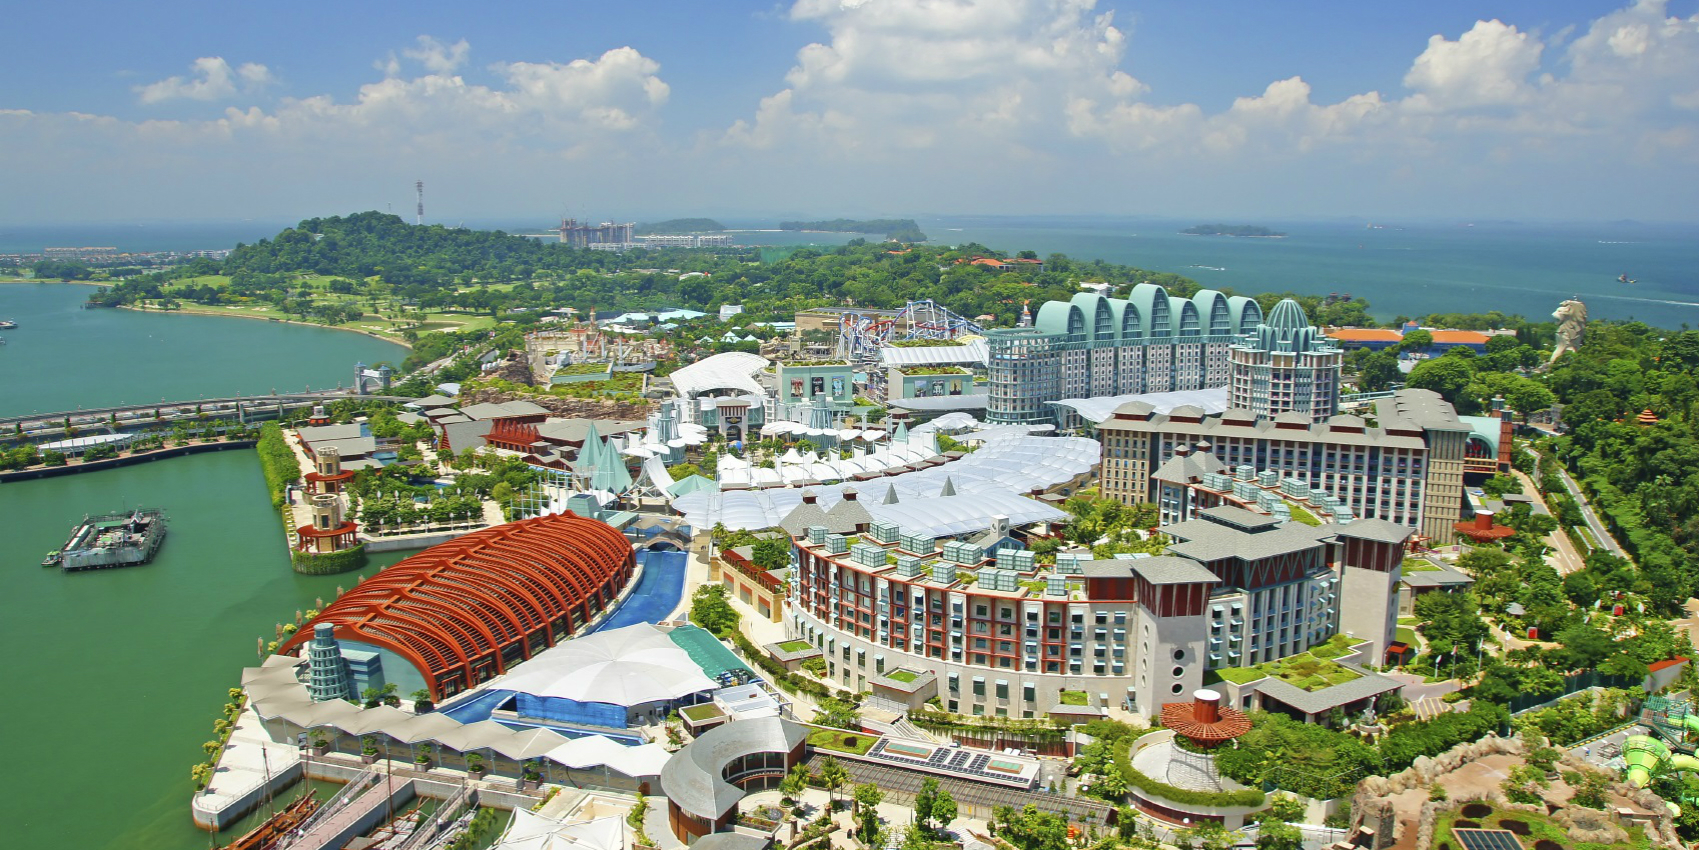 resort world sentosa attractions marketing strategies This case provides the setting to assess the capital raising and management strategies carried out by genting international/singapore to build resorts world sentosa the case launches the singapore integrated resorts concept that is a divergent new business model in the world gaming business.